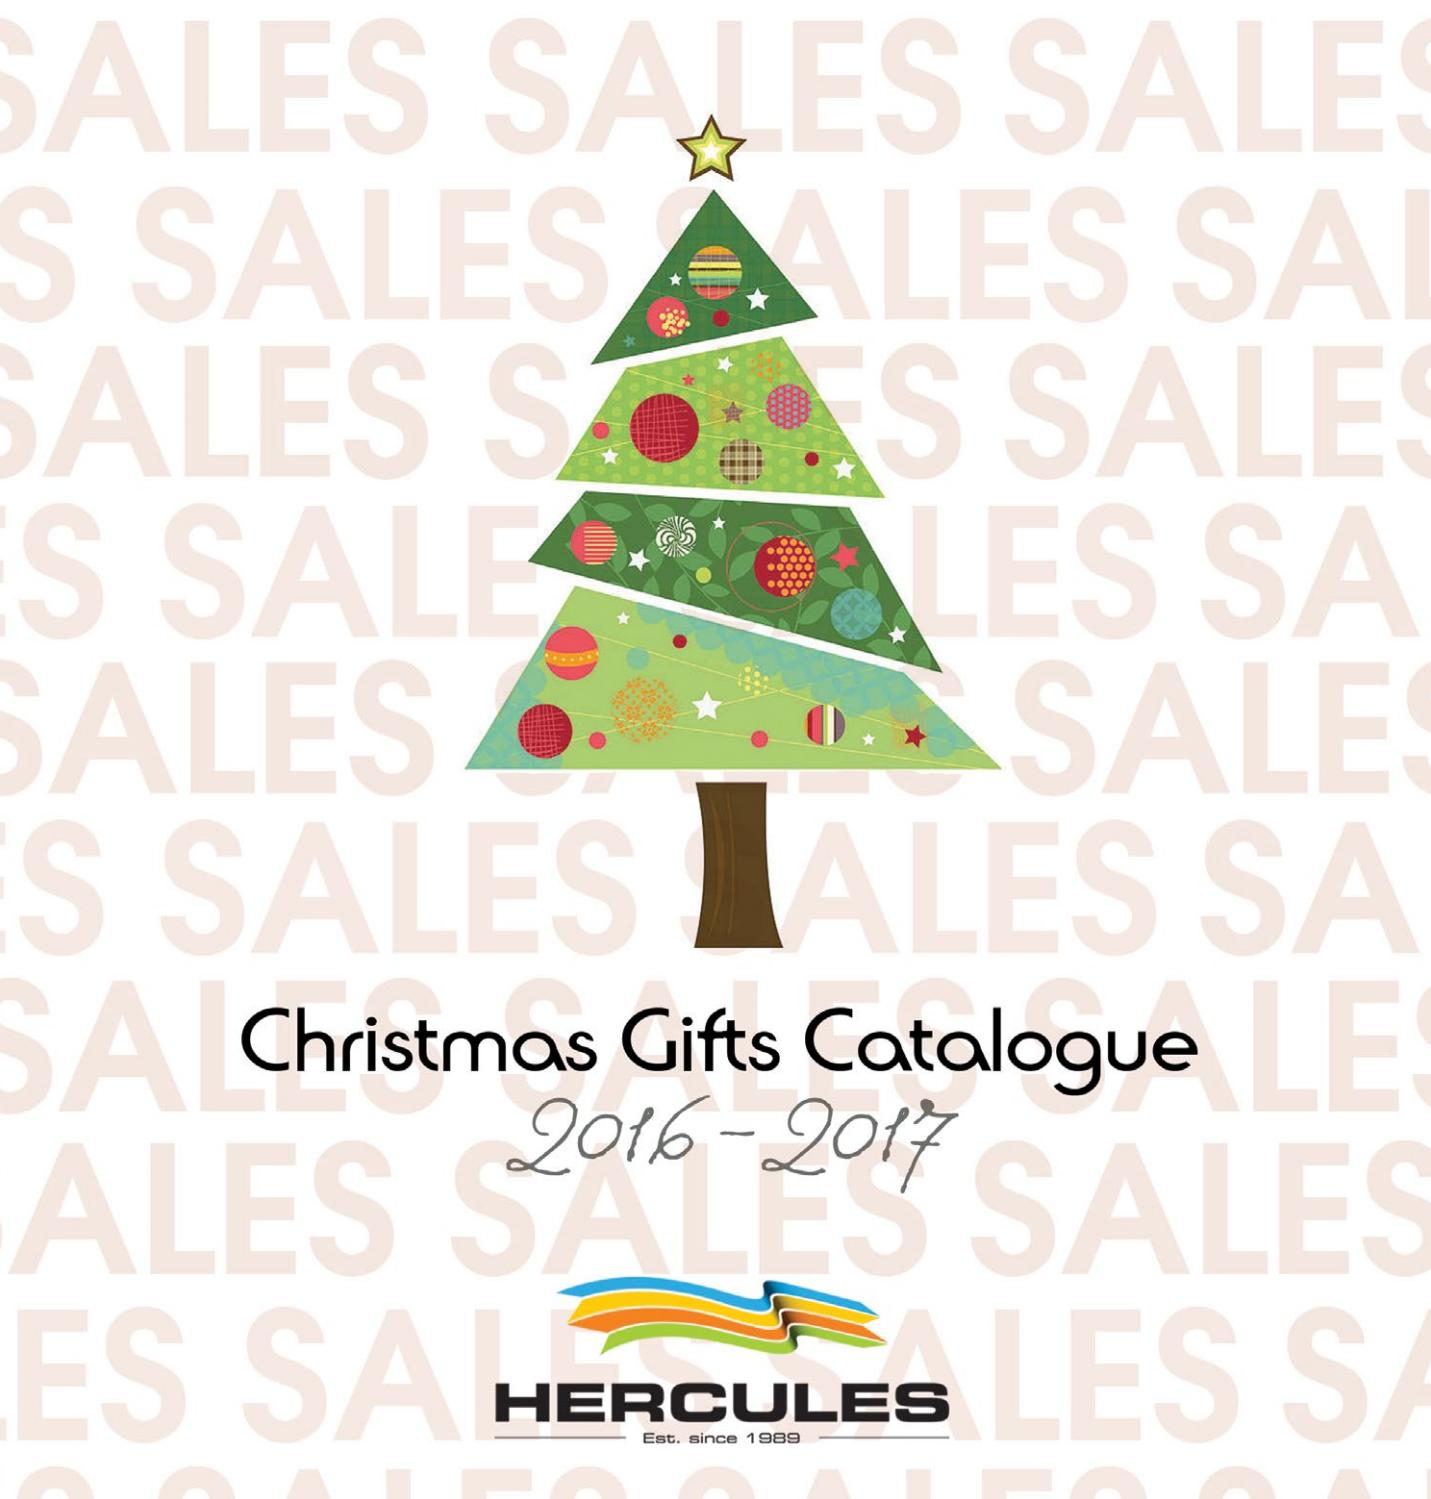 Christmas Gifts Catalogue 2016-2017 by Hercules Group - issuu